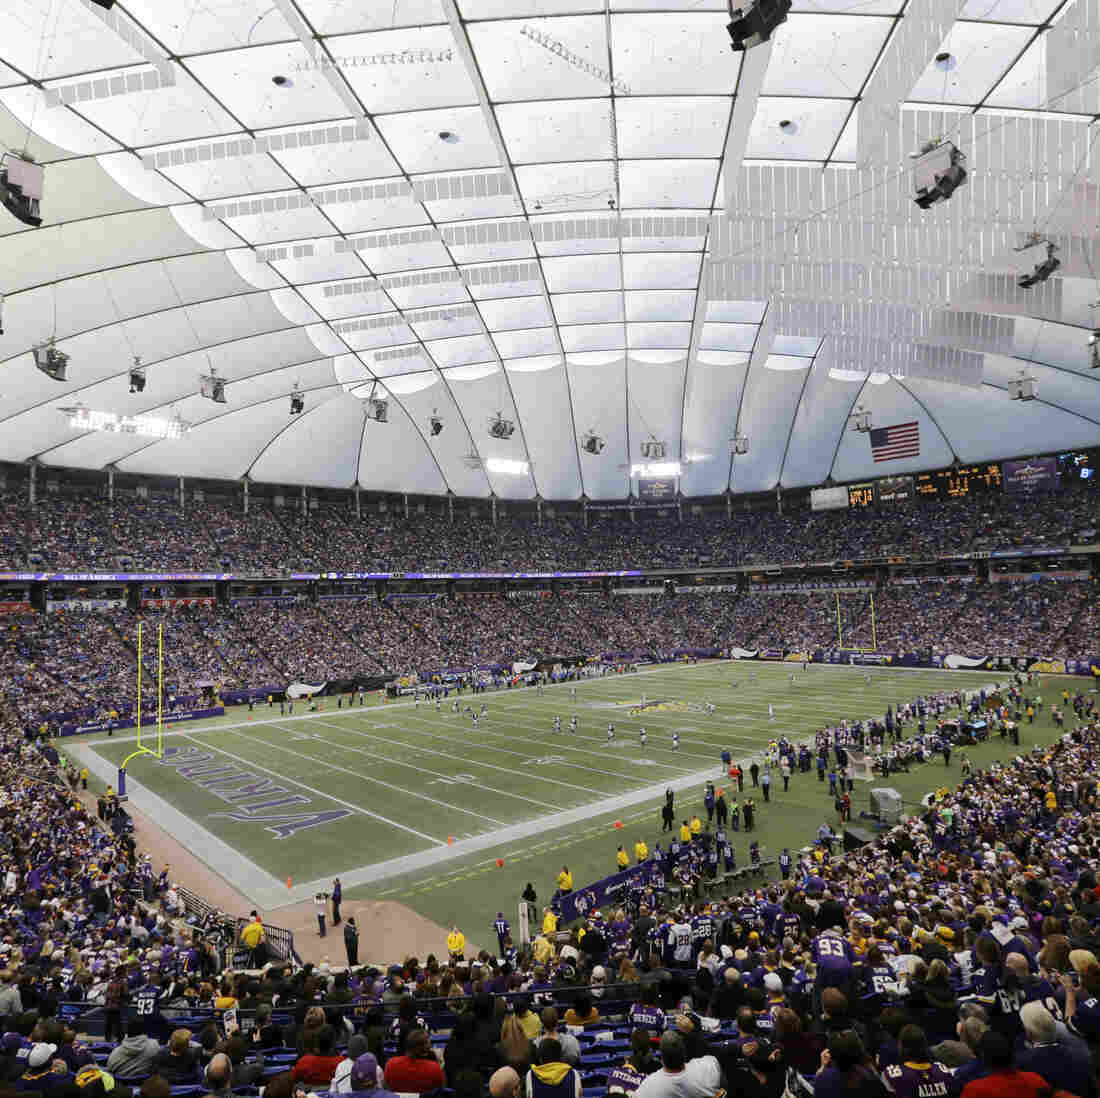 Watch: The Metrodome Roof Deflates In 35 Minutes